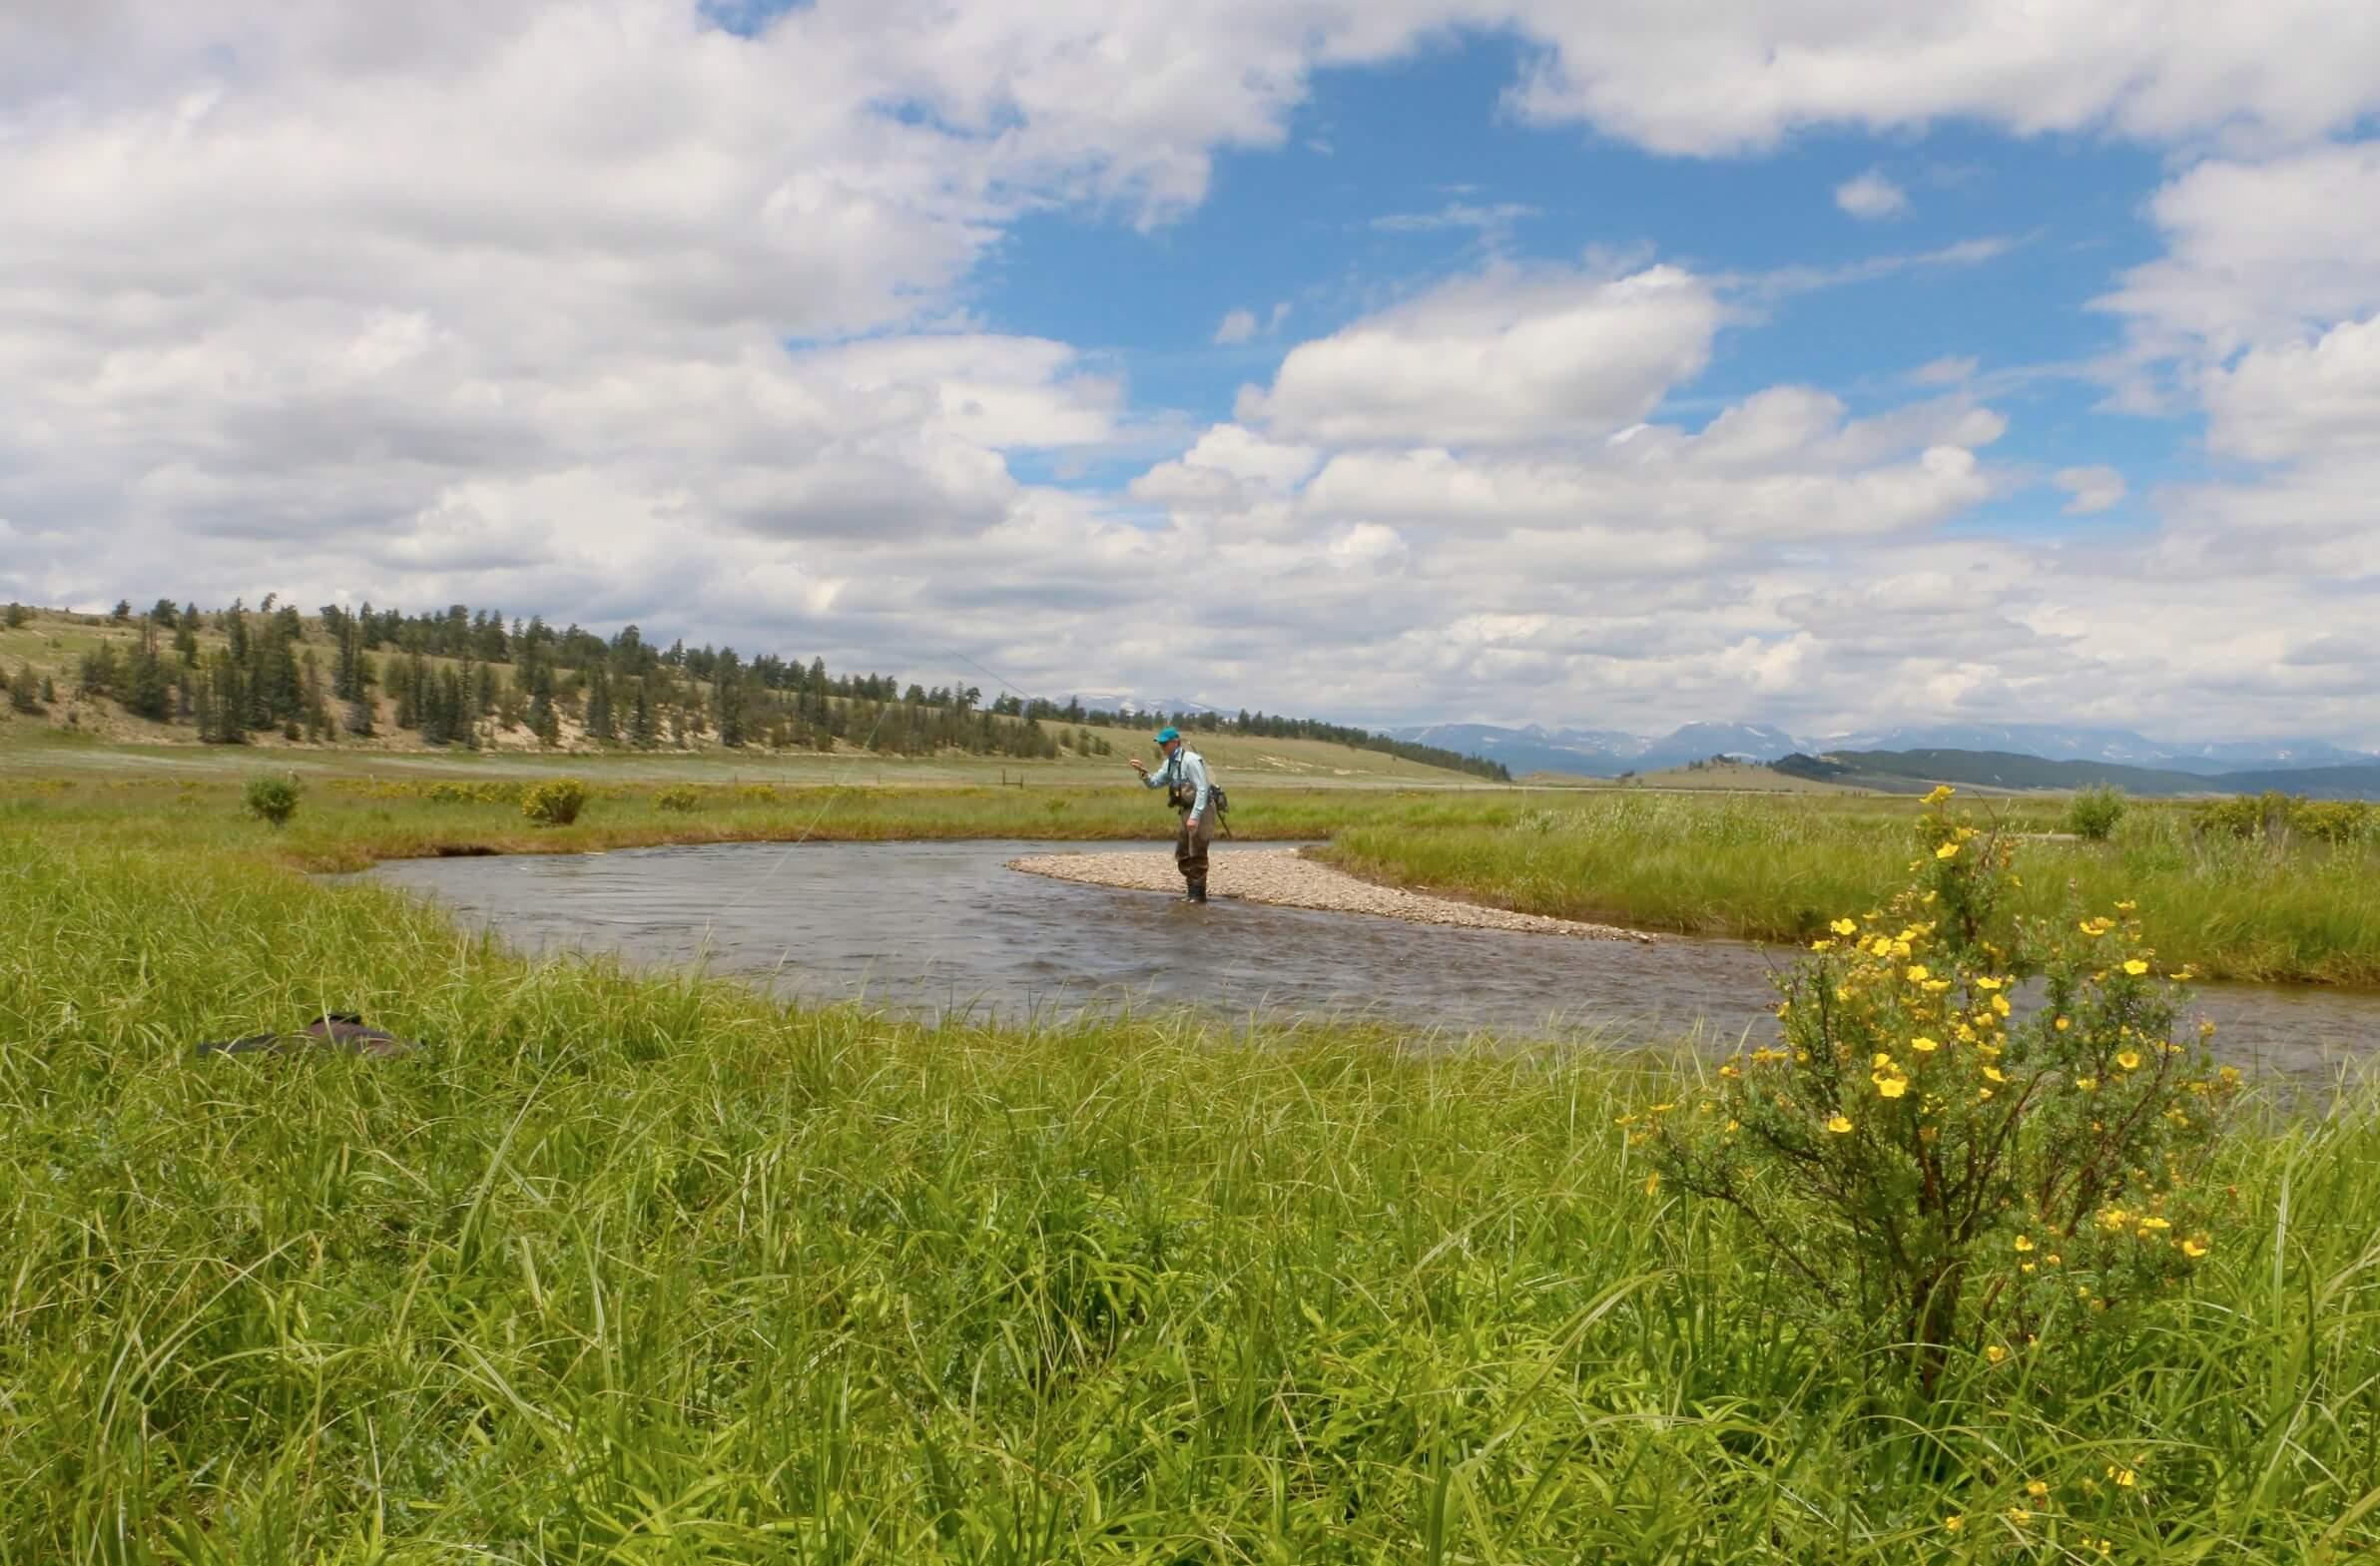 A fisherman casts his line in a gorgeous meadow on a Colorado summer day.